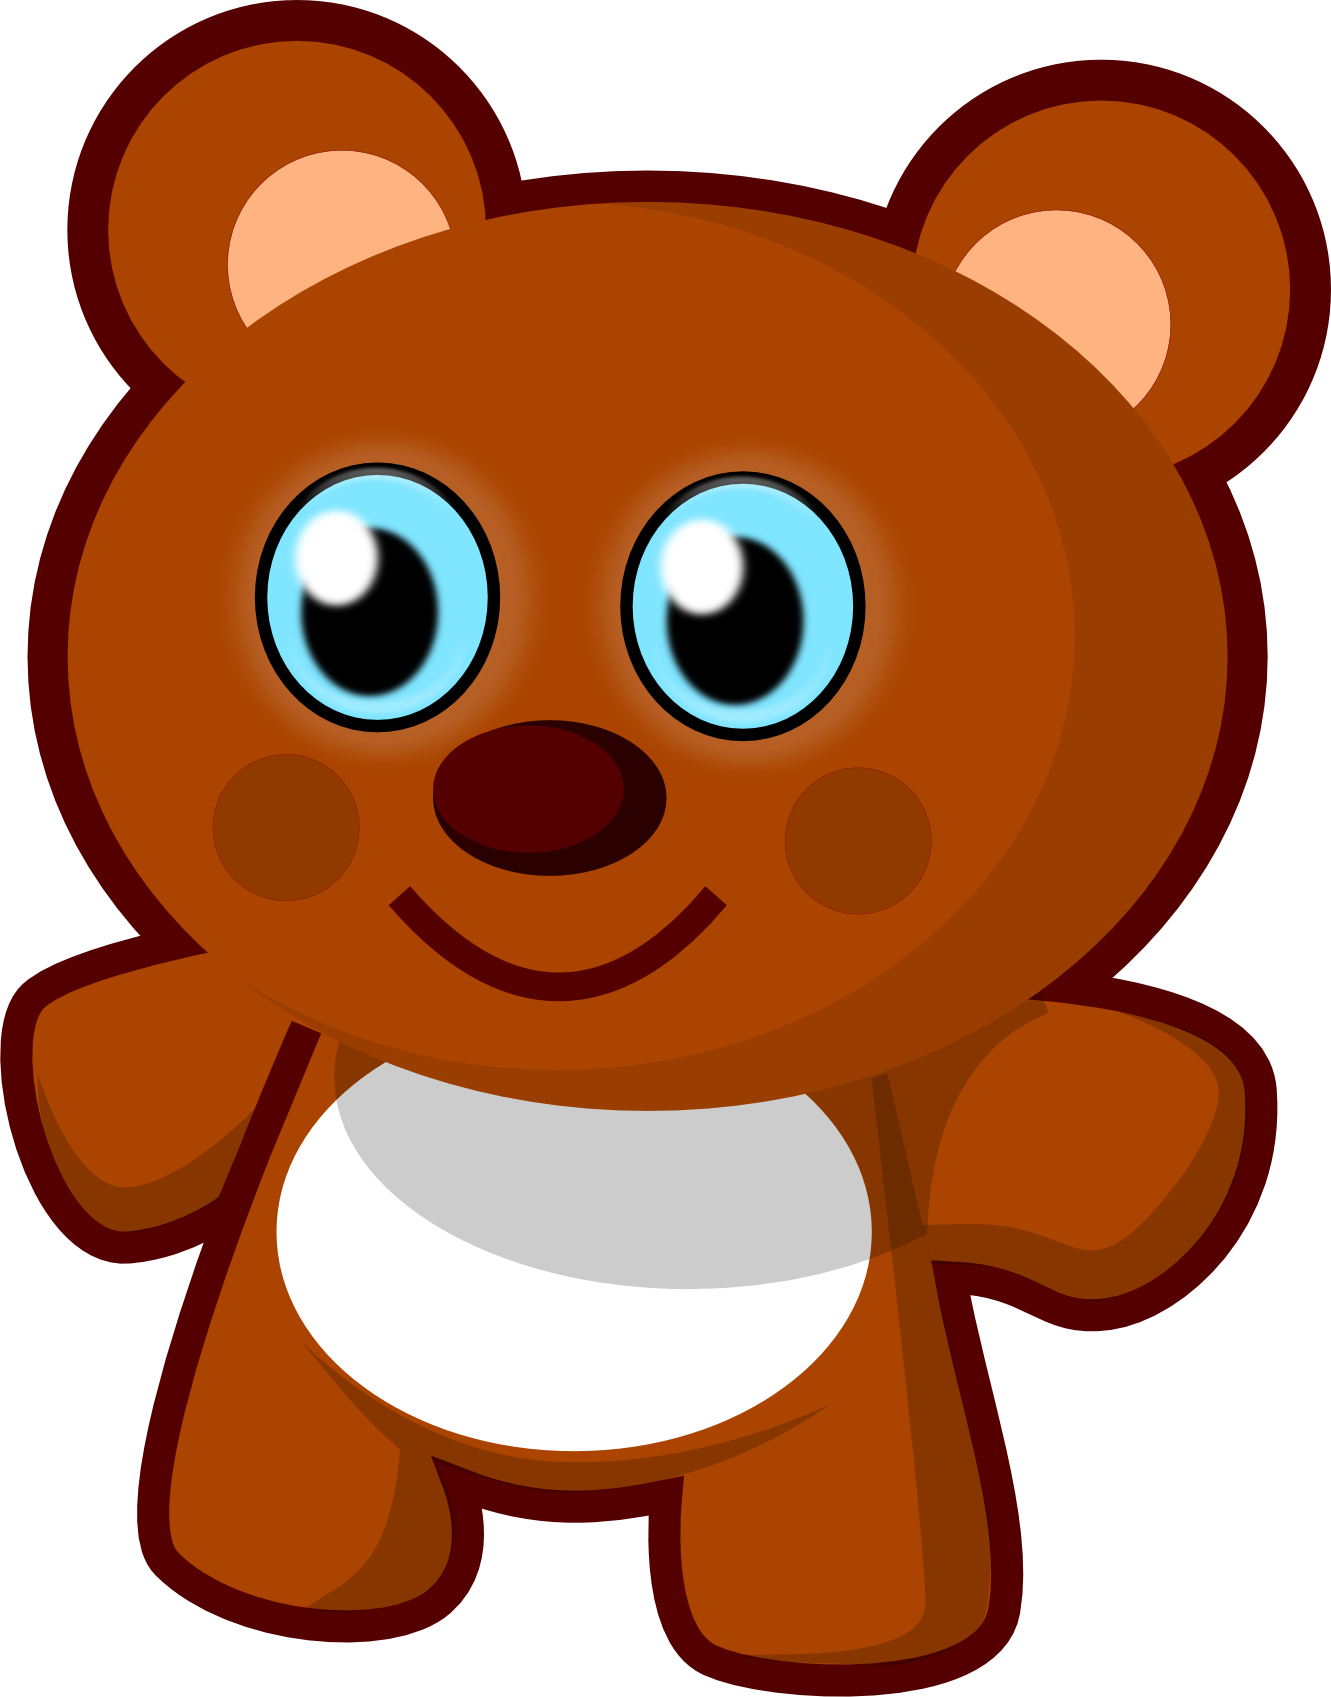 Stuffed Animal clipart #9, Download drawings